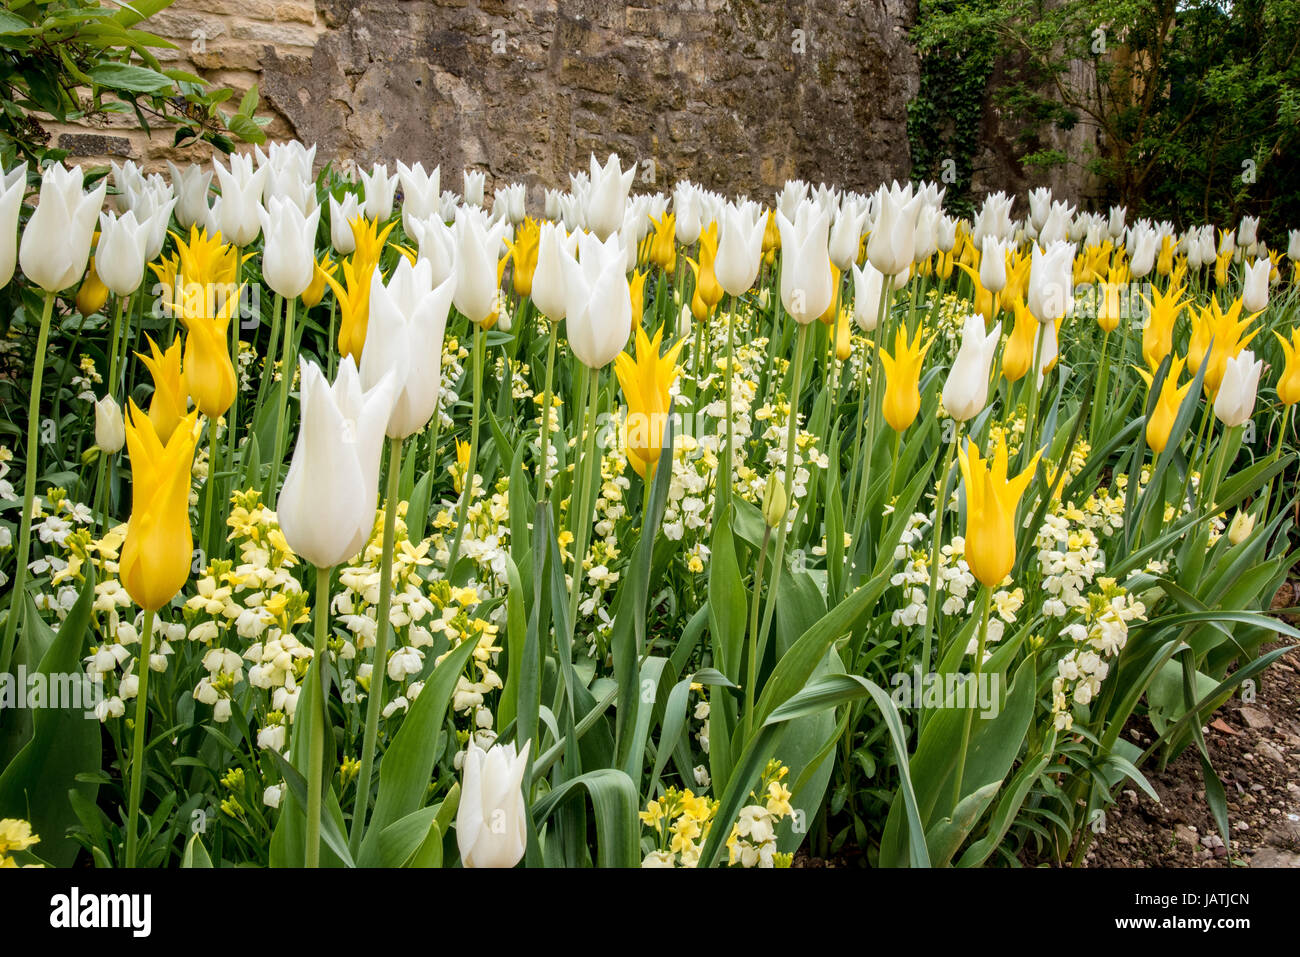 A bed of bright yellow and white tulips in full bloom - Stock Image